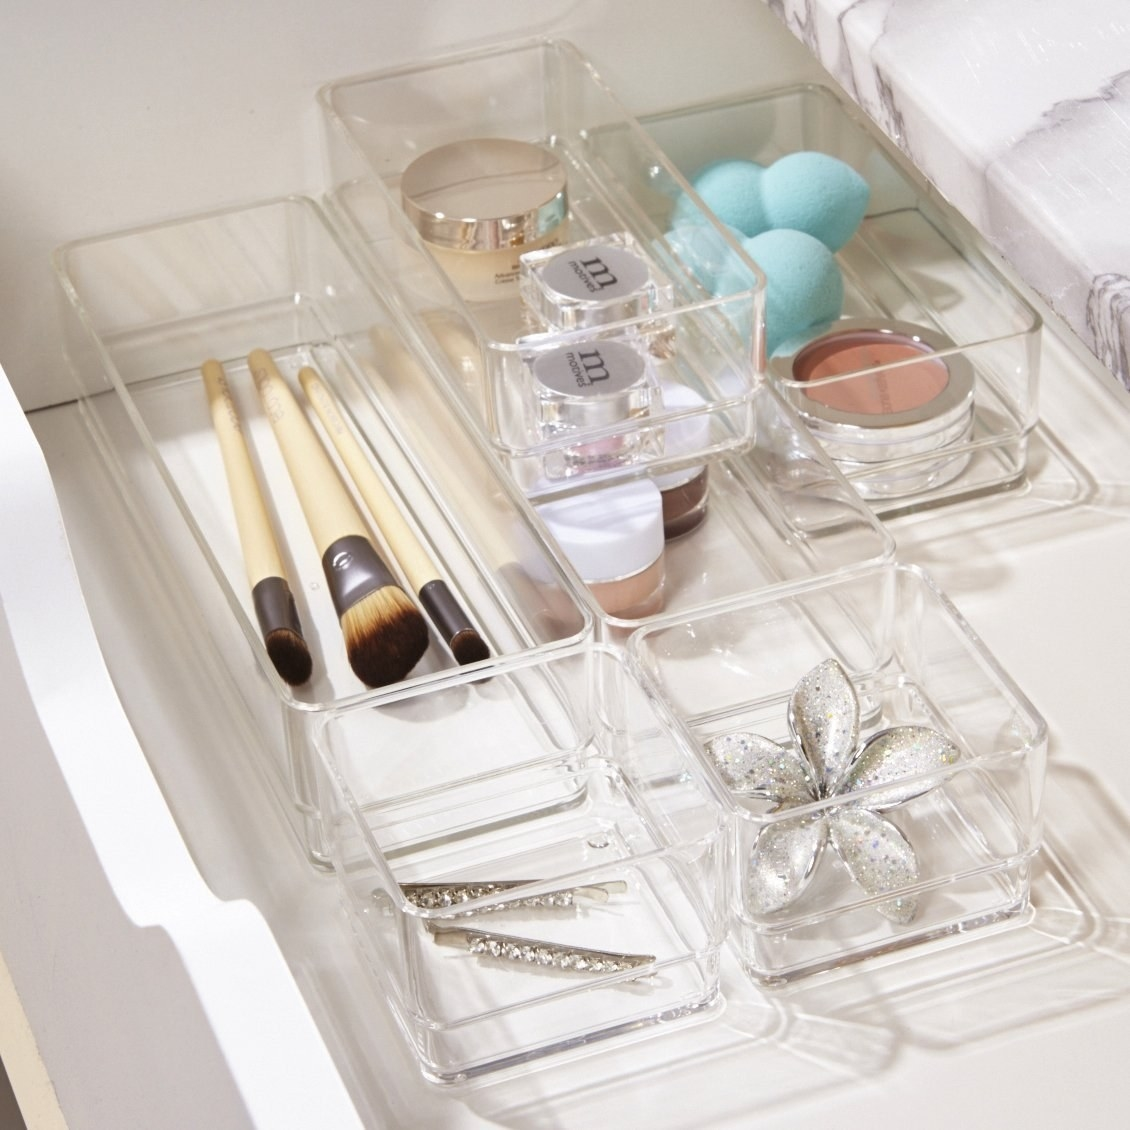 Six clear bins in a drawer organizing an array of beauty supplies